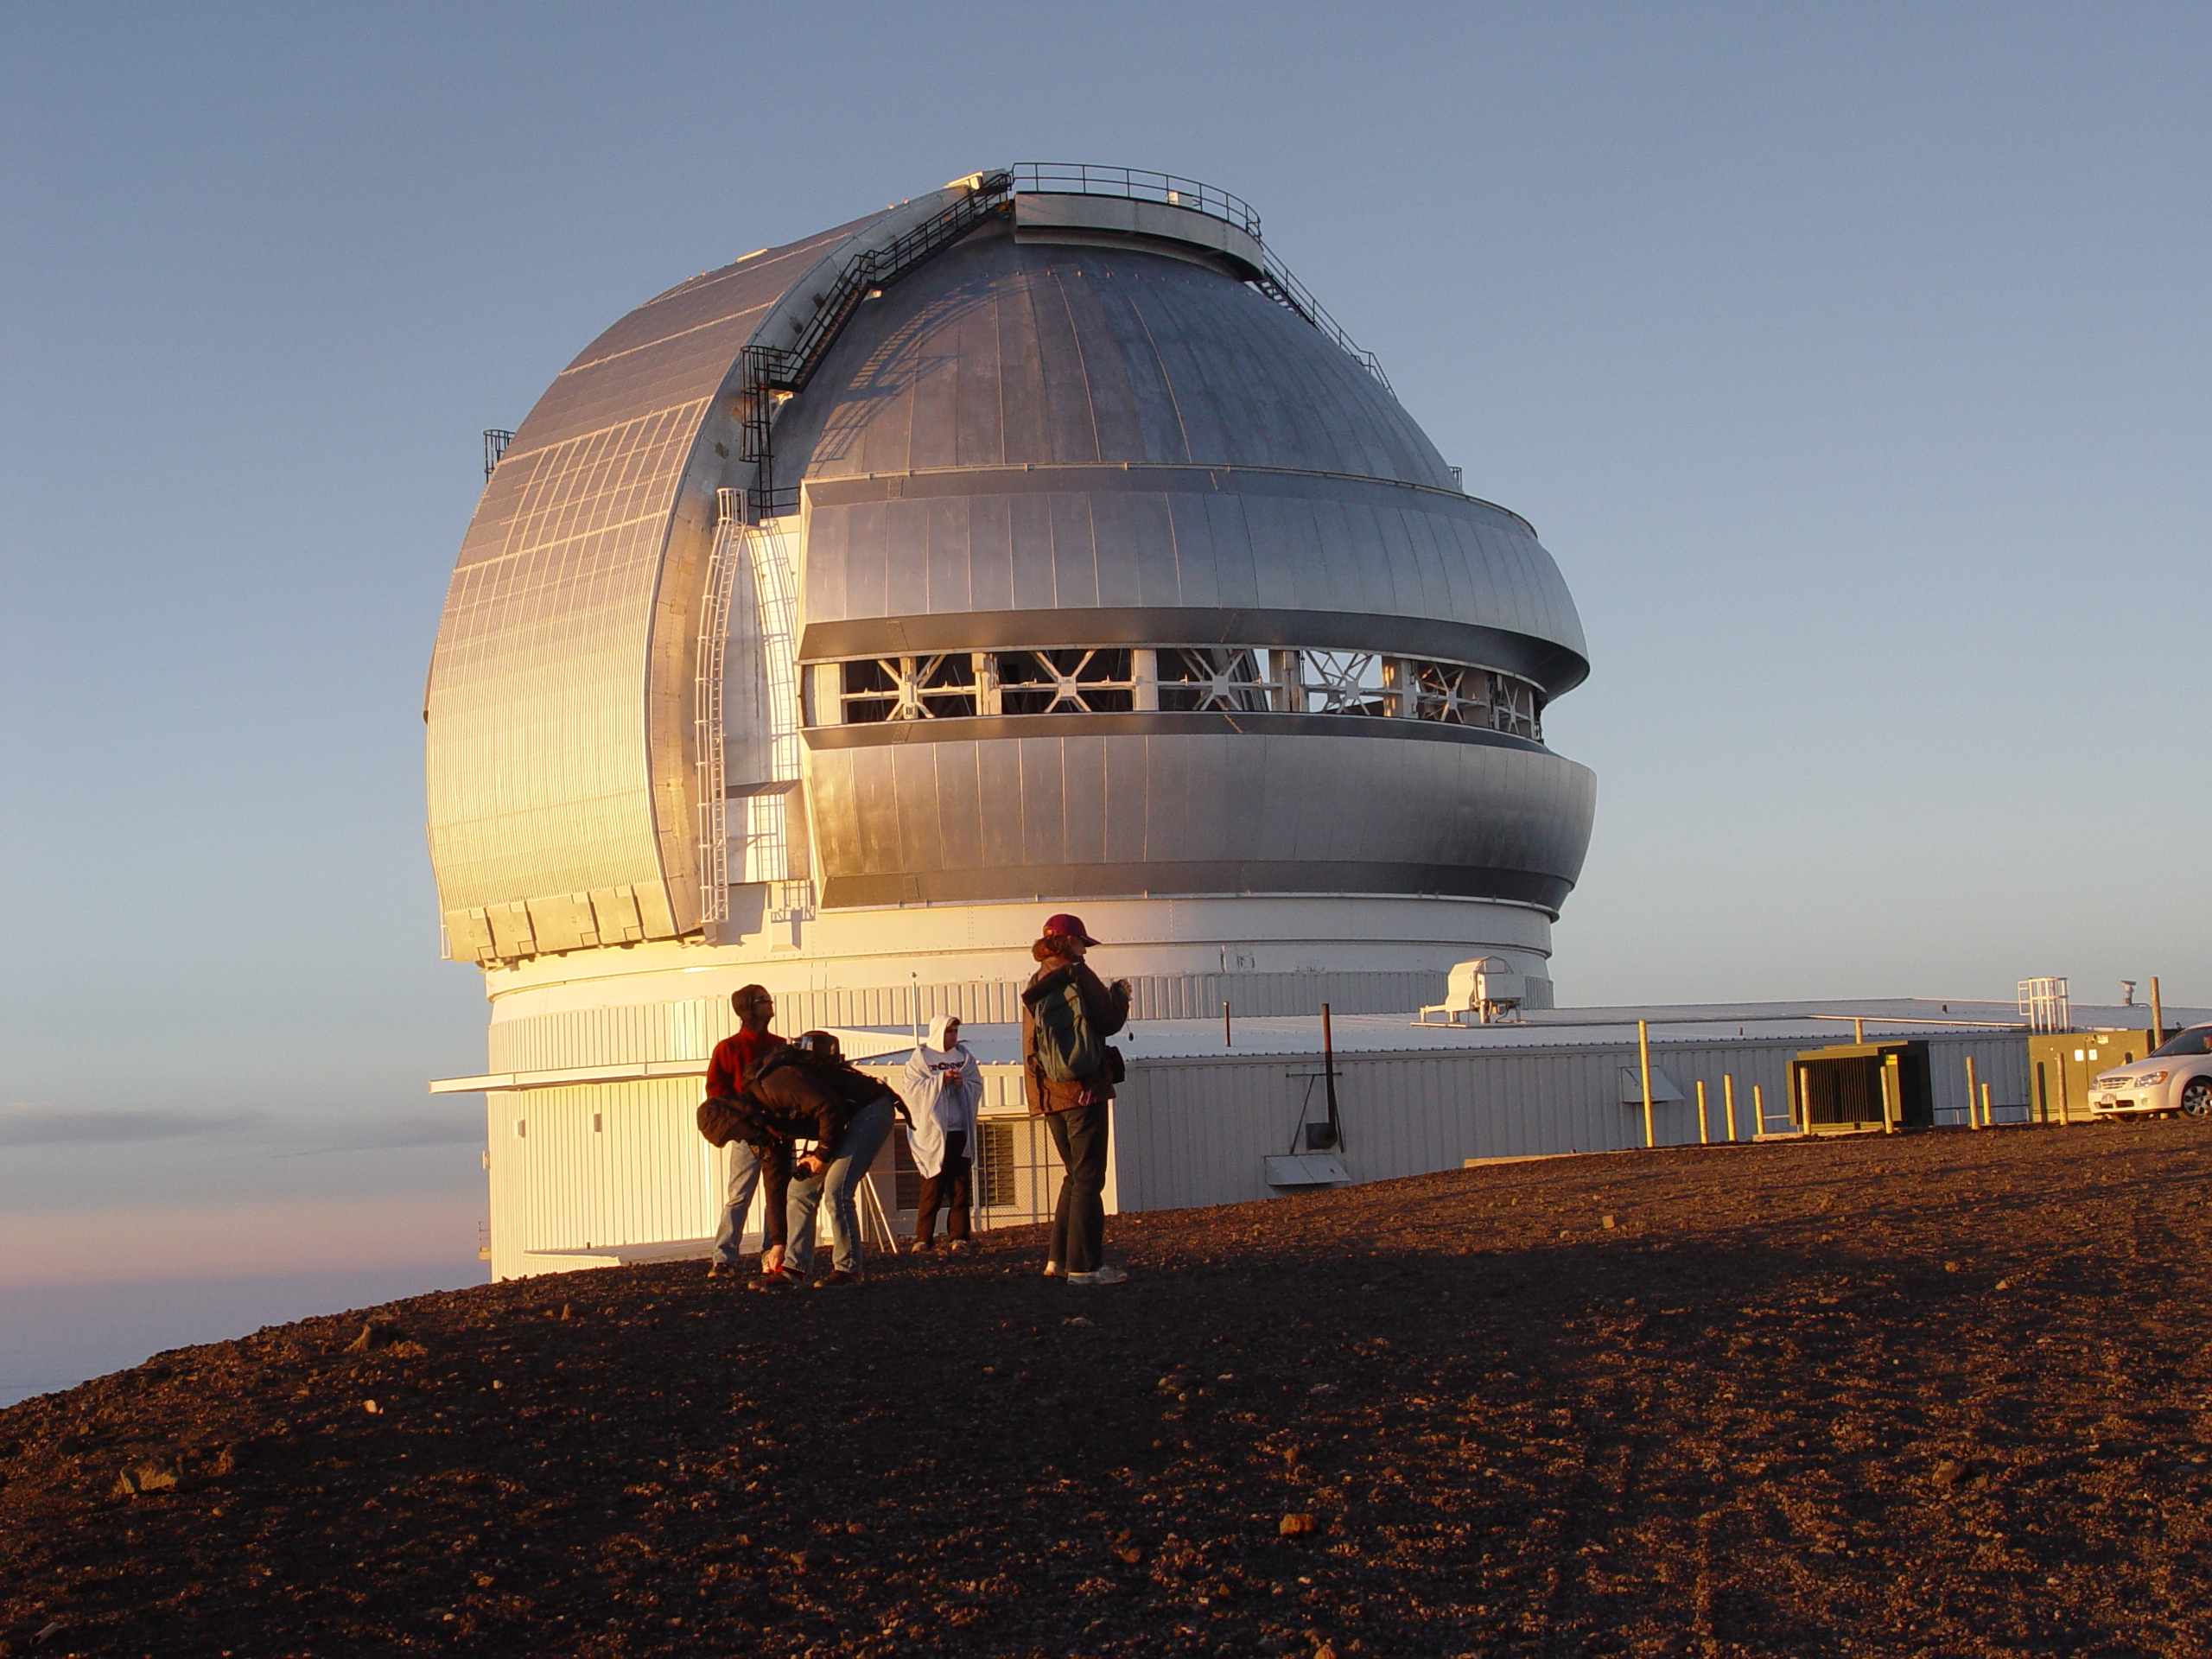 astronomy observatory with telescope - photo #35